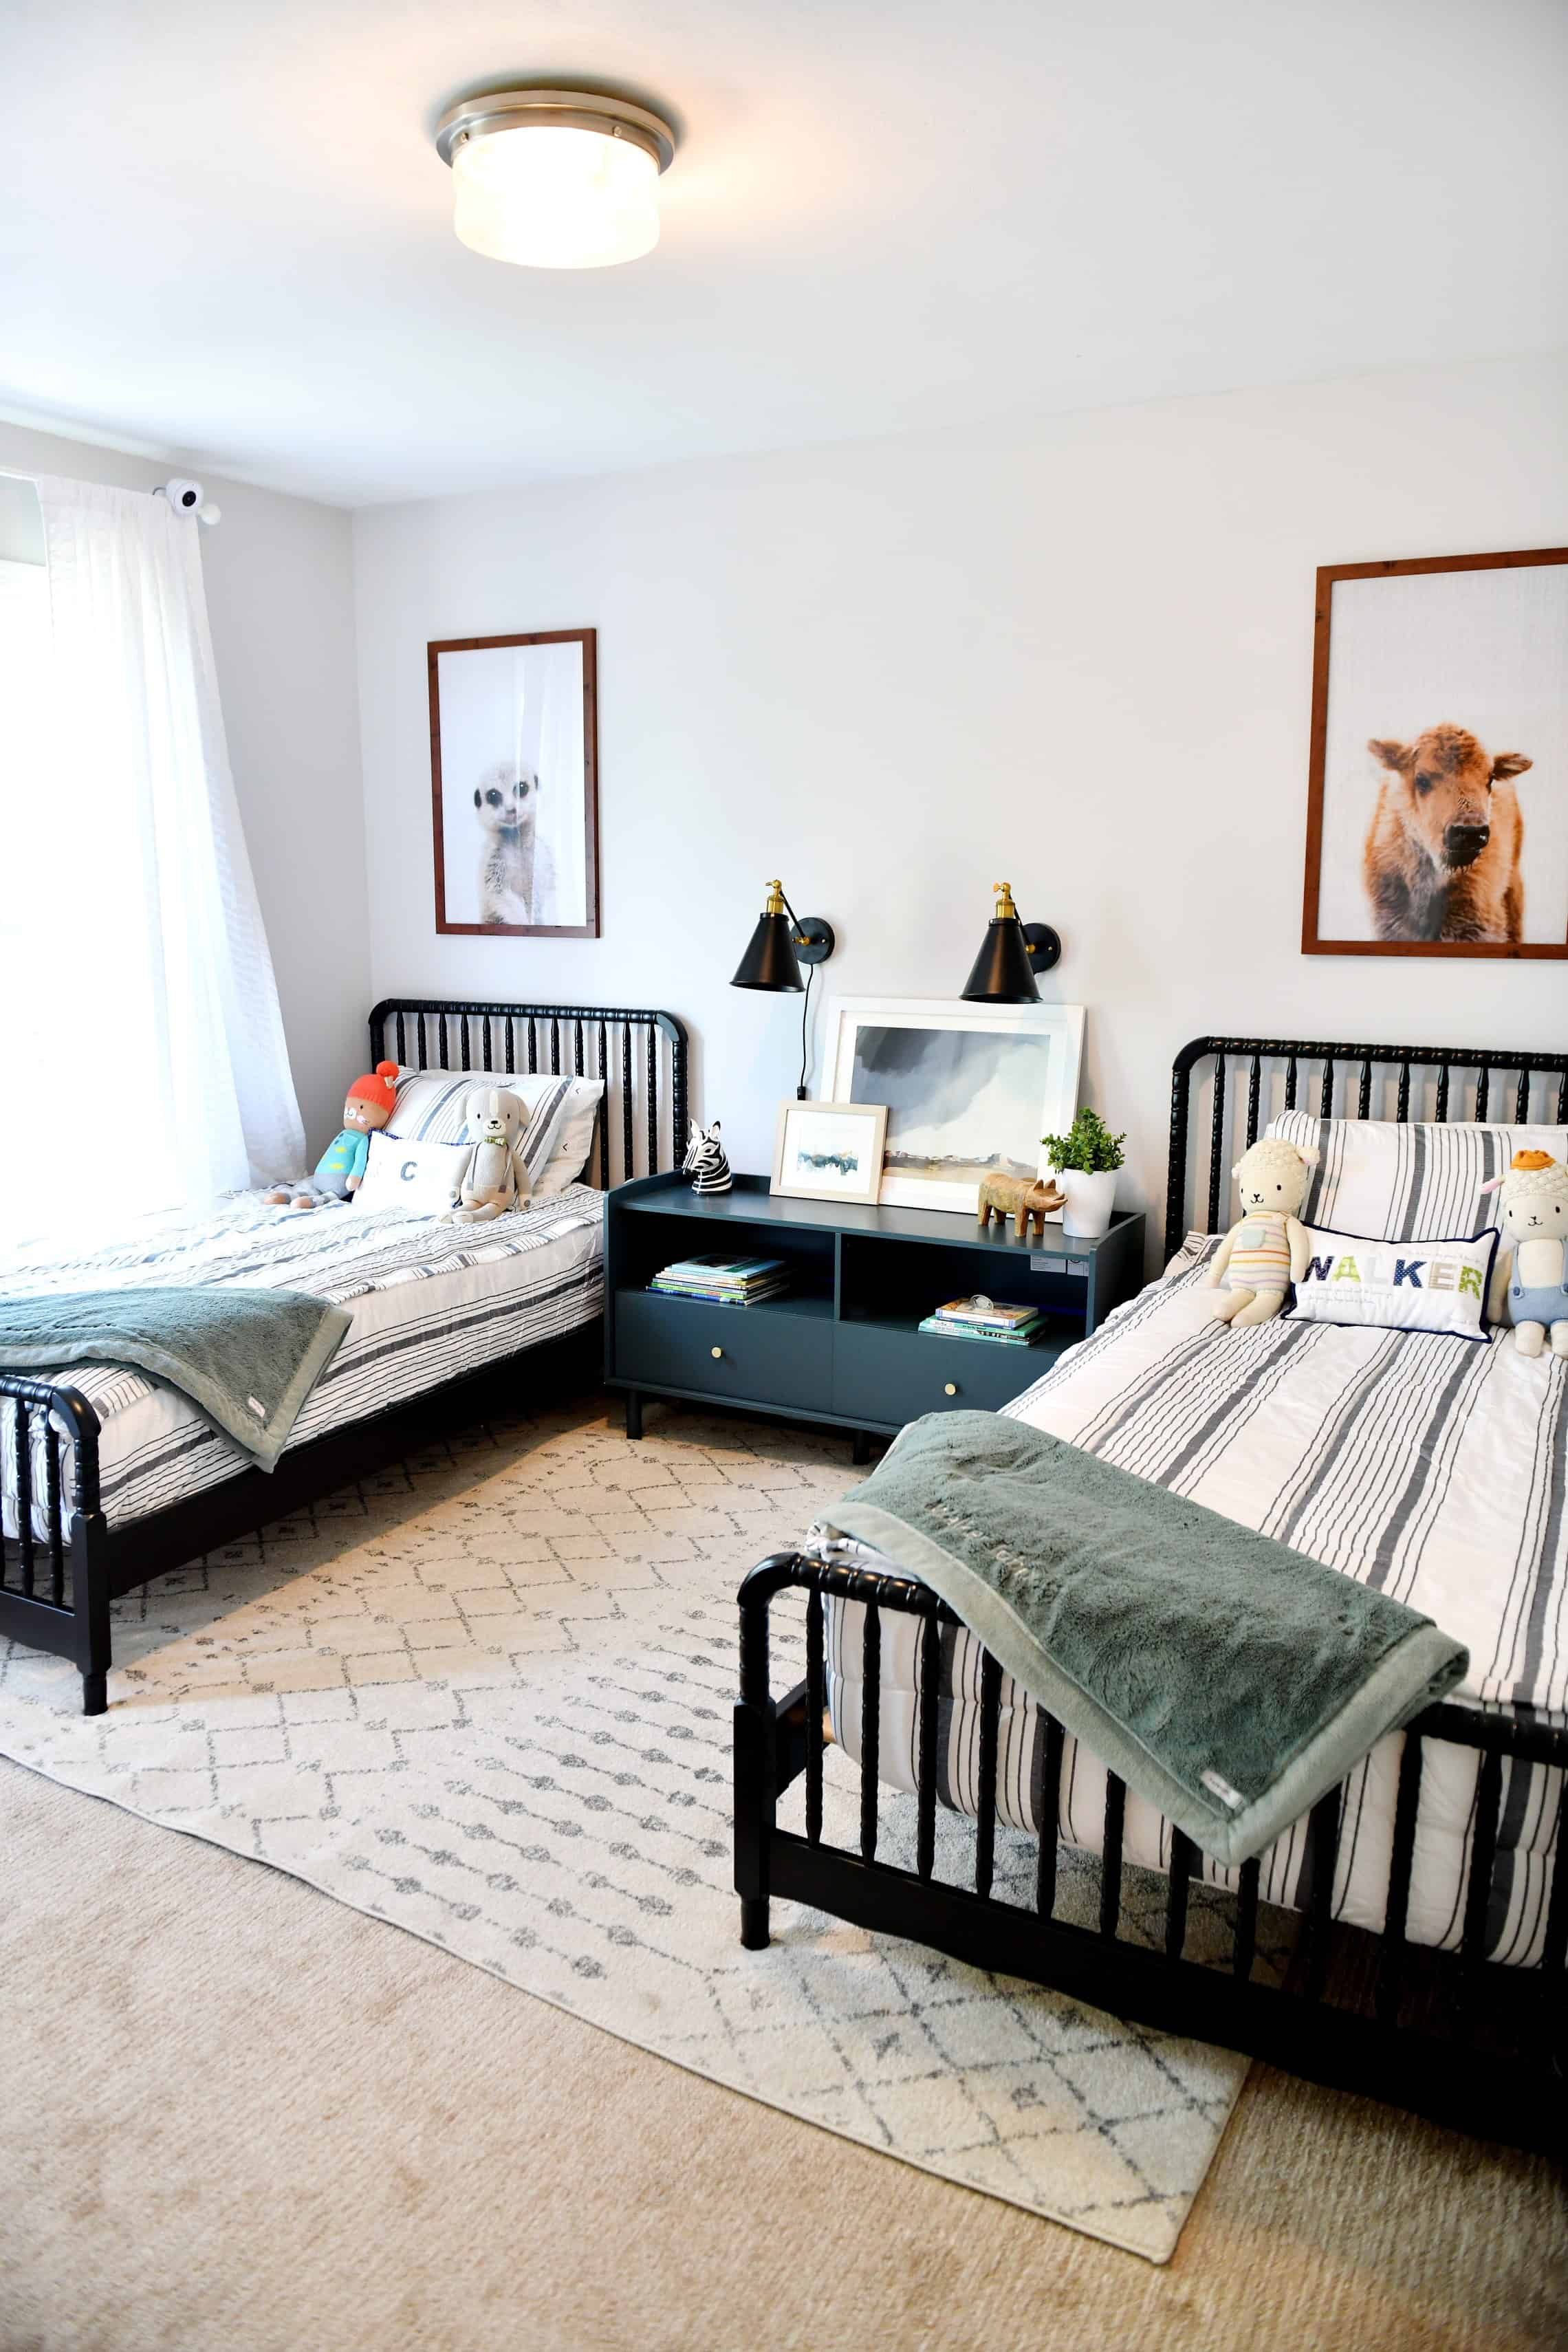 photo of shared boys room with two black Jenny Lind beds